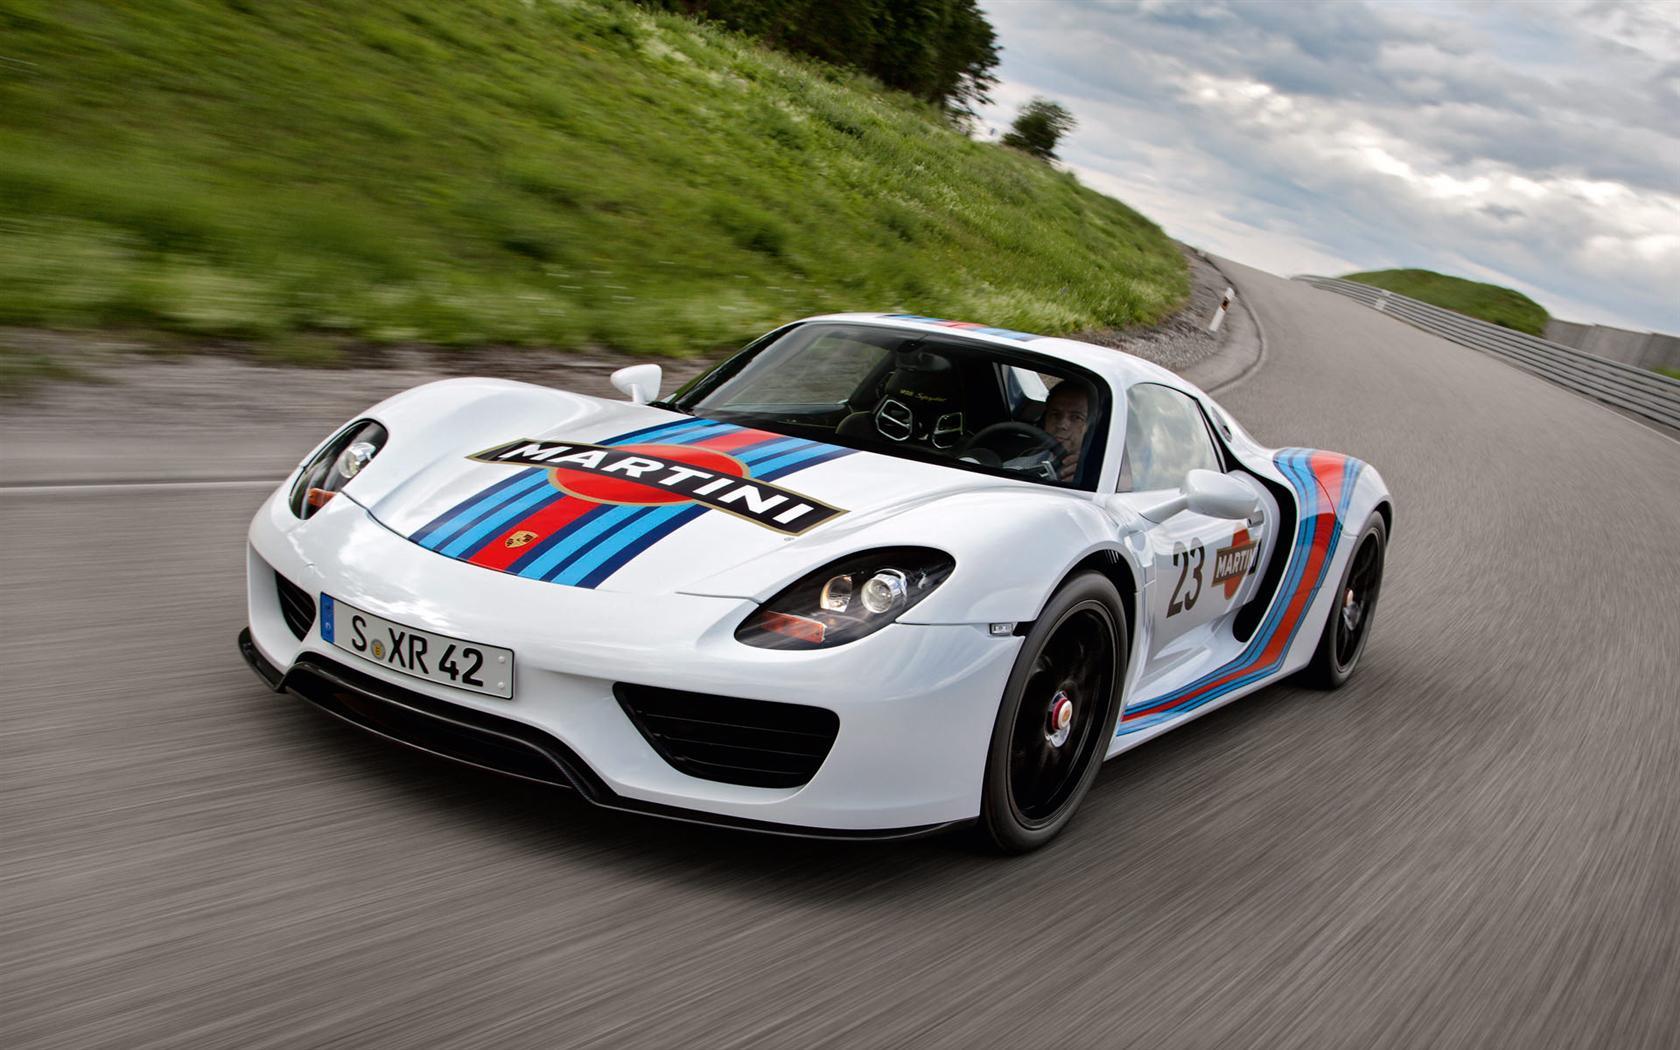 2013 porsche 918 spyder martini livery images photo porsche 918 martini racing 2013 5. Black Bedroom Furniture Sets. Home Design Ideas